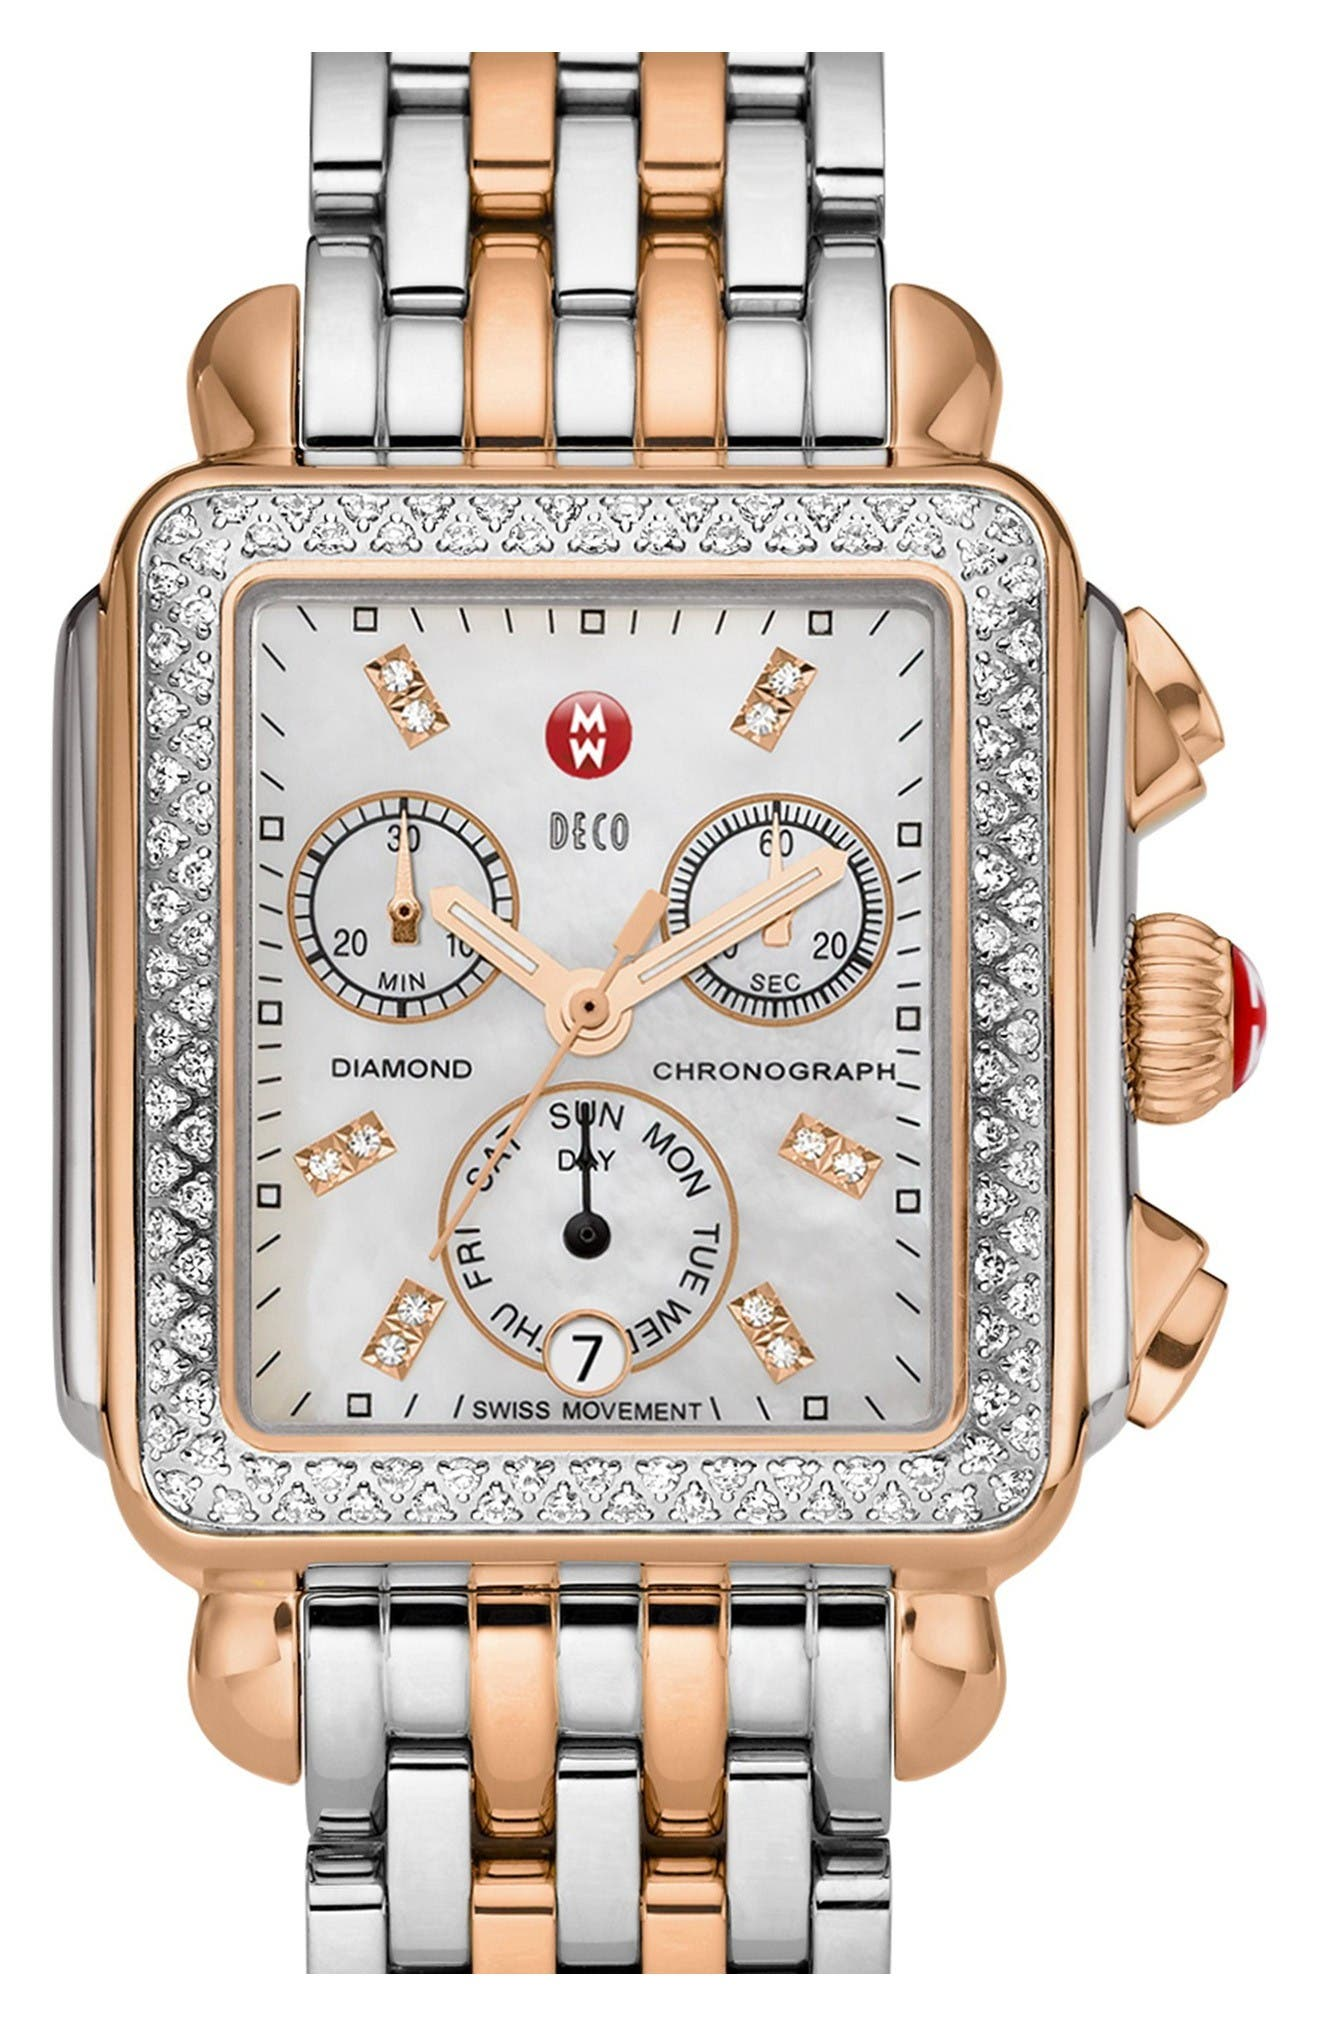 Deco Diamond Diamond Dial Watch Case, 33mm x 35mm,                             Alternate thumbnail 5, color,                             SILVER/ ROSE GOLD